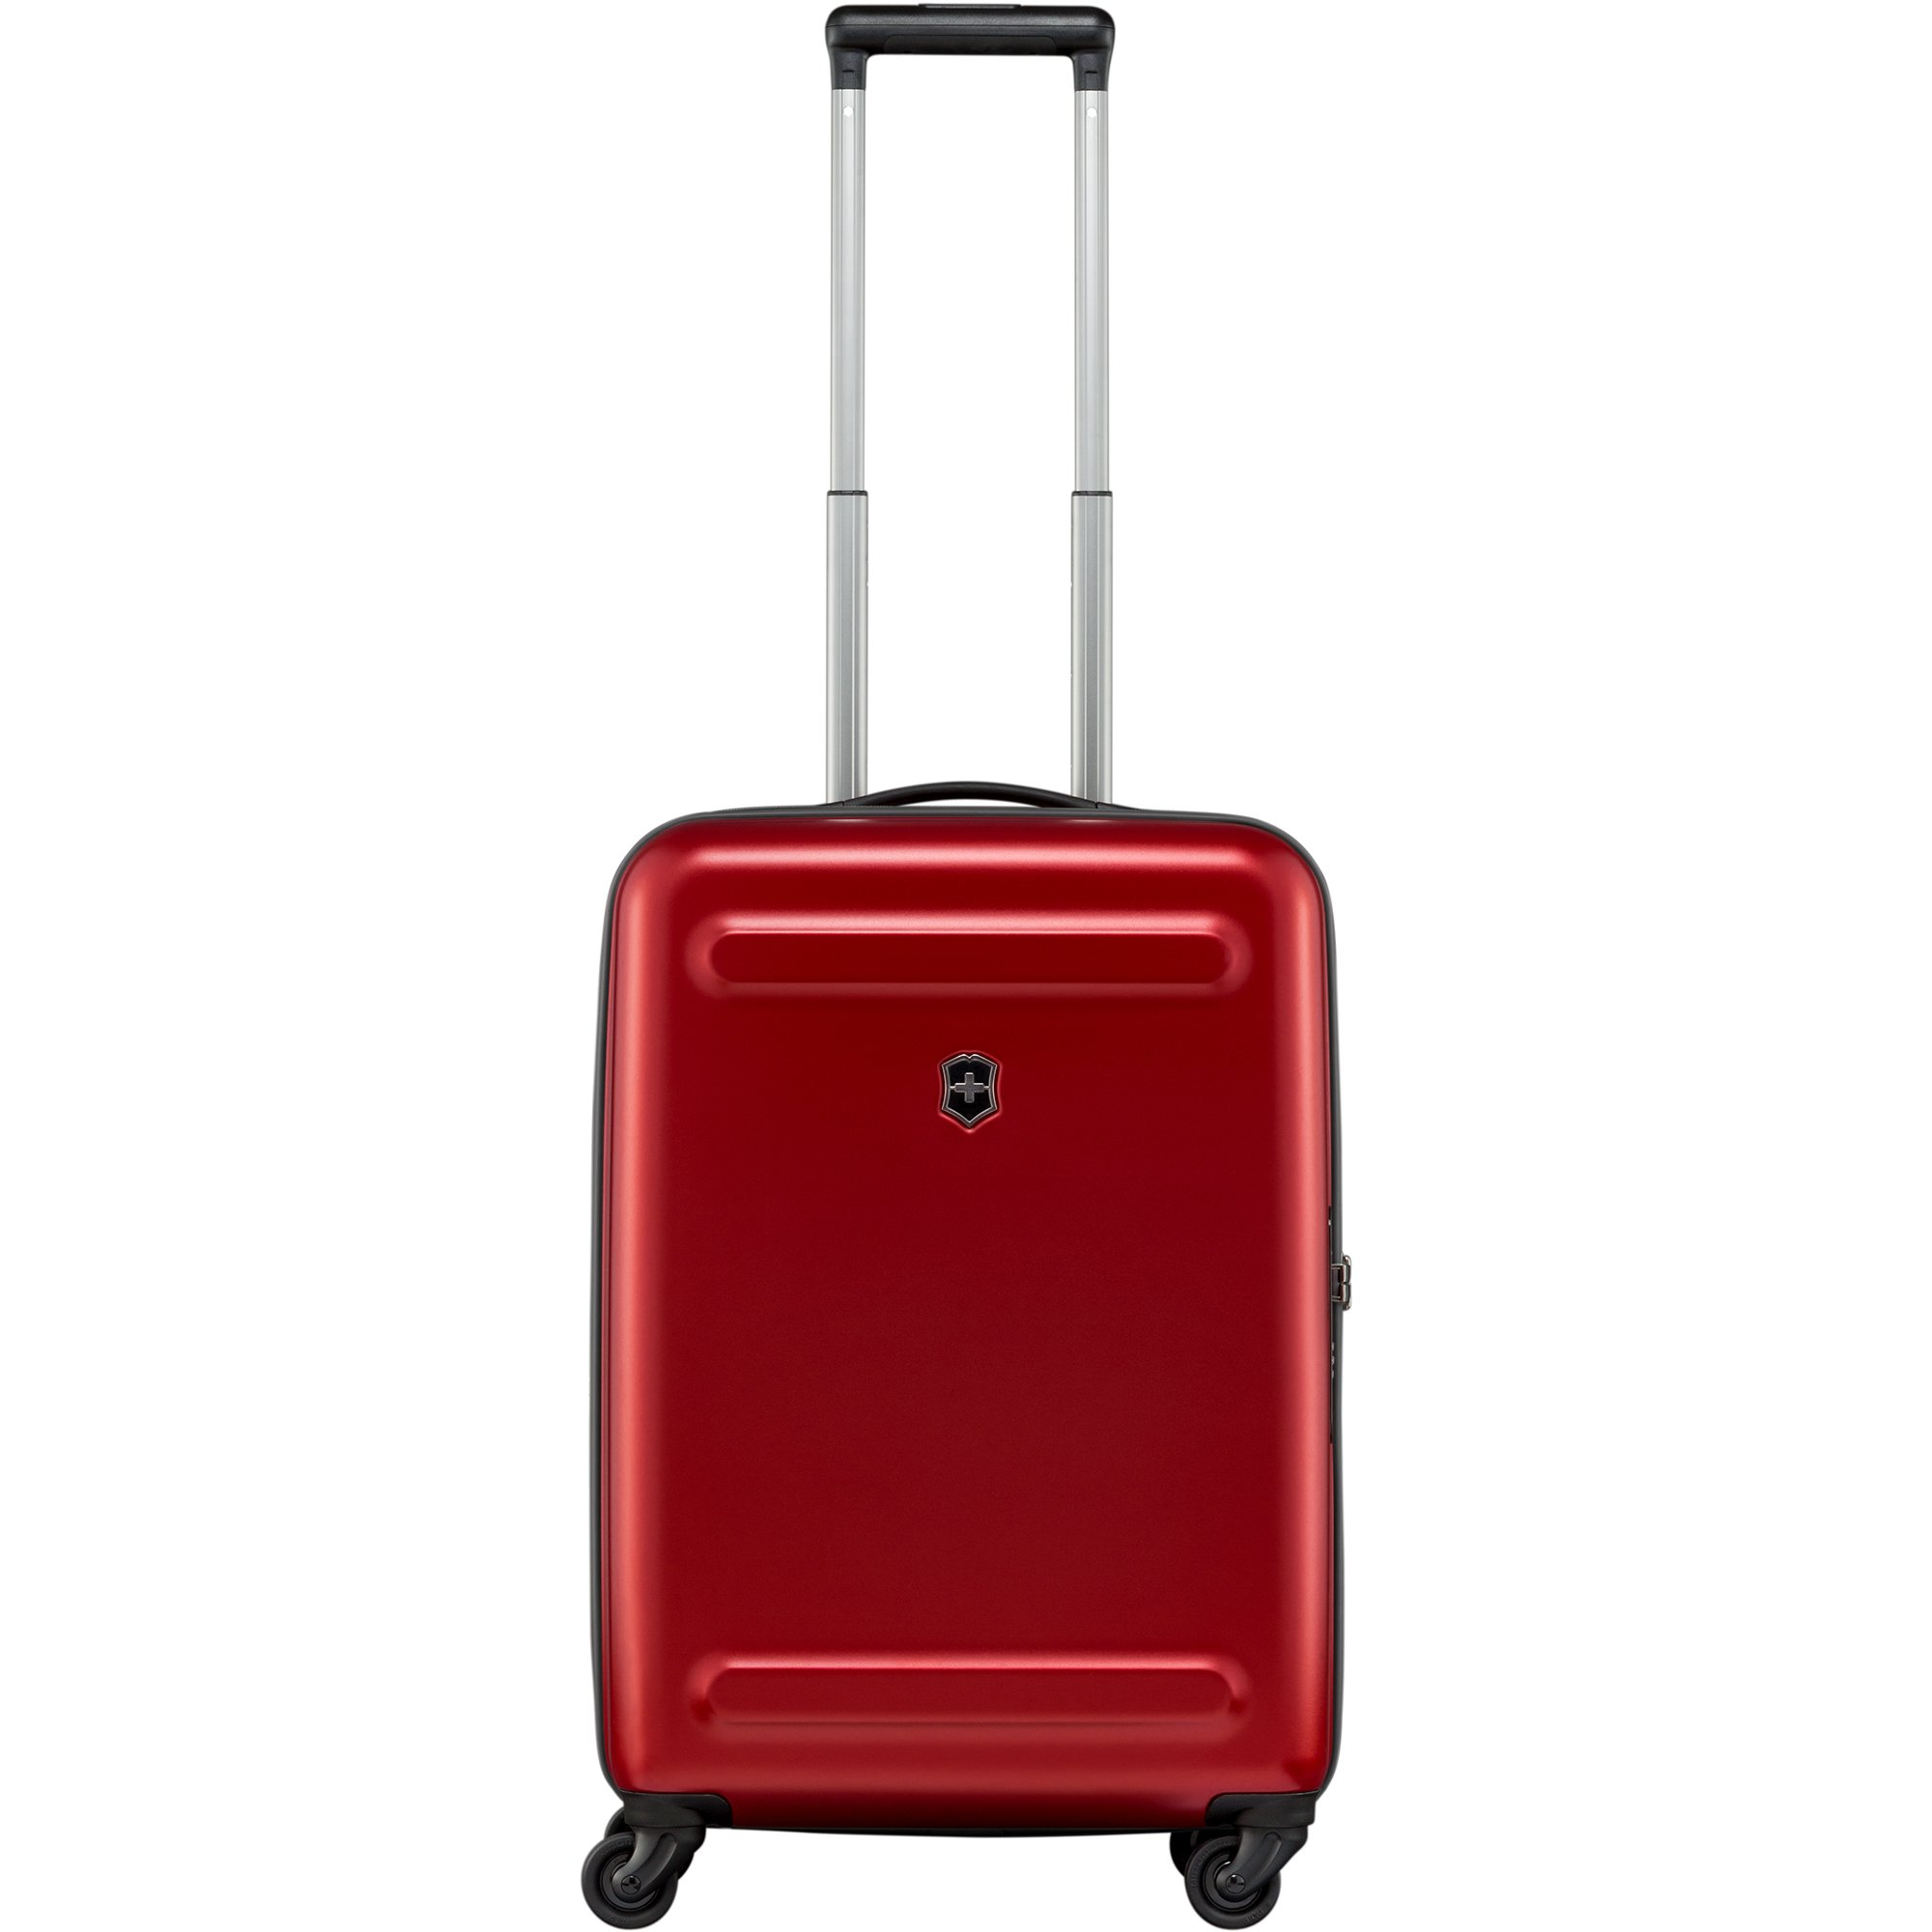 Victorinox 601019 Etherius Large Carry-On Luggage Bag, Red, 60 Centimeters